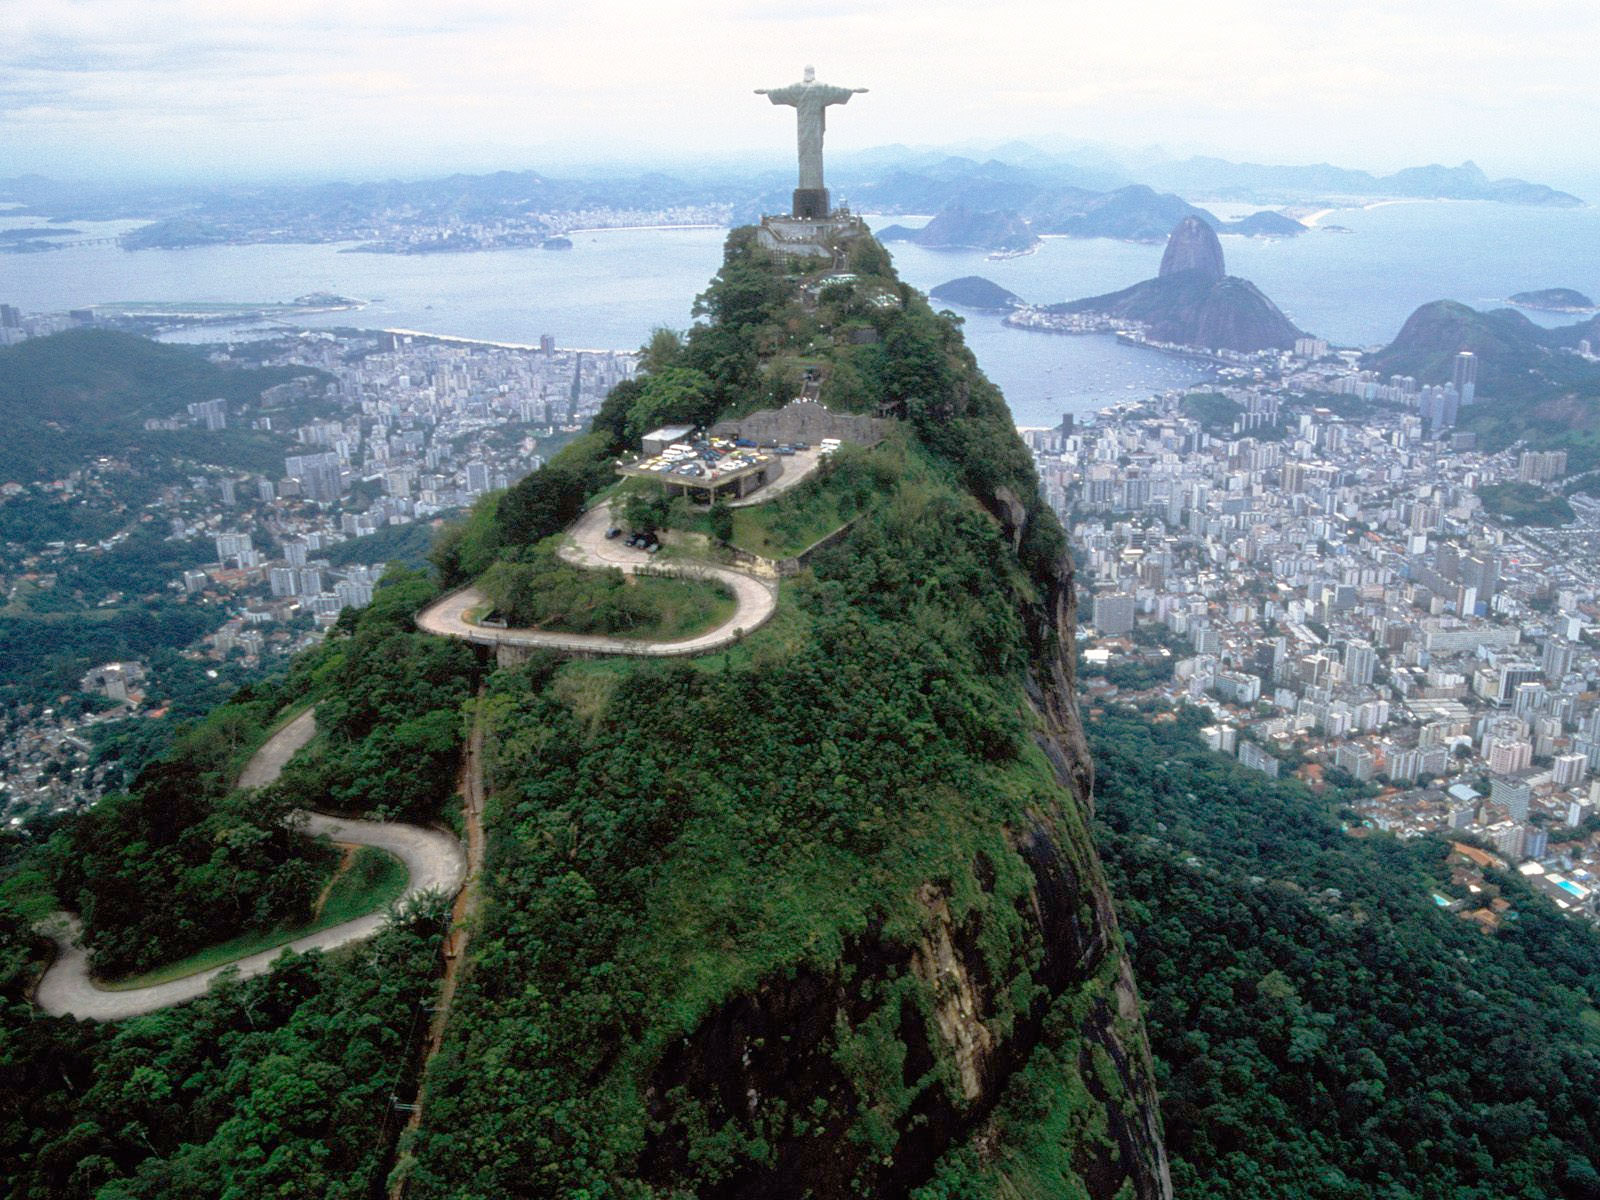 Christ+the+redeemer.jpg